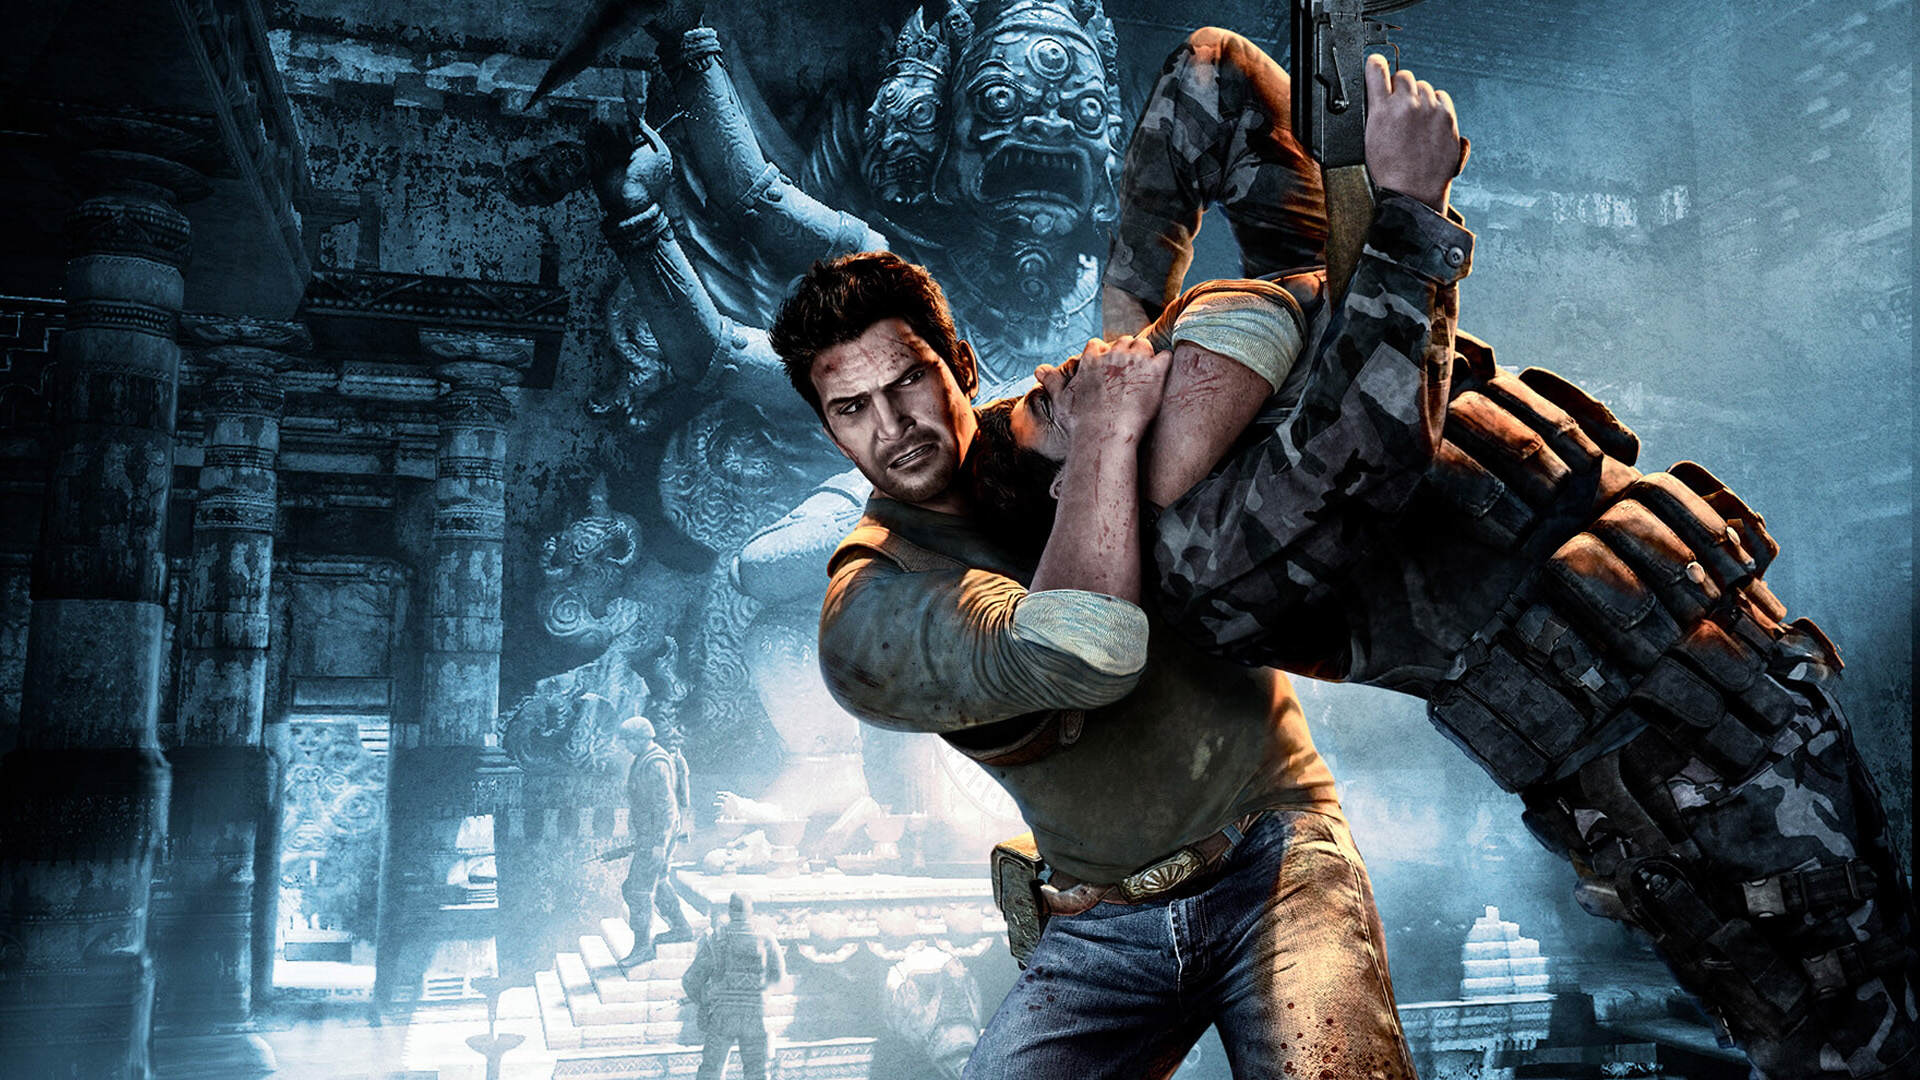 uncharted04 Fan Video Brilliantly Recaps Uncharted Trilogy In Under 10 Minutes